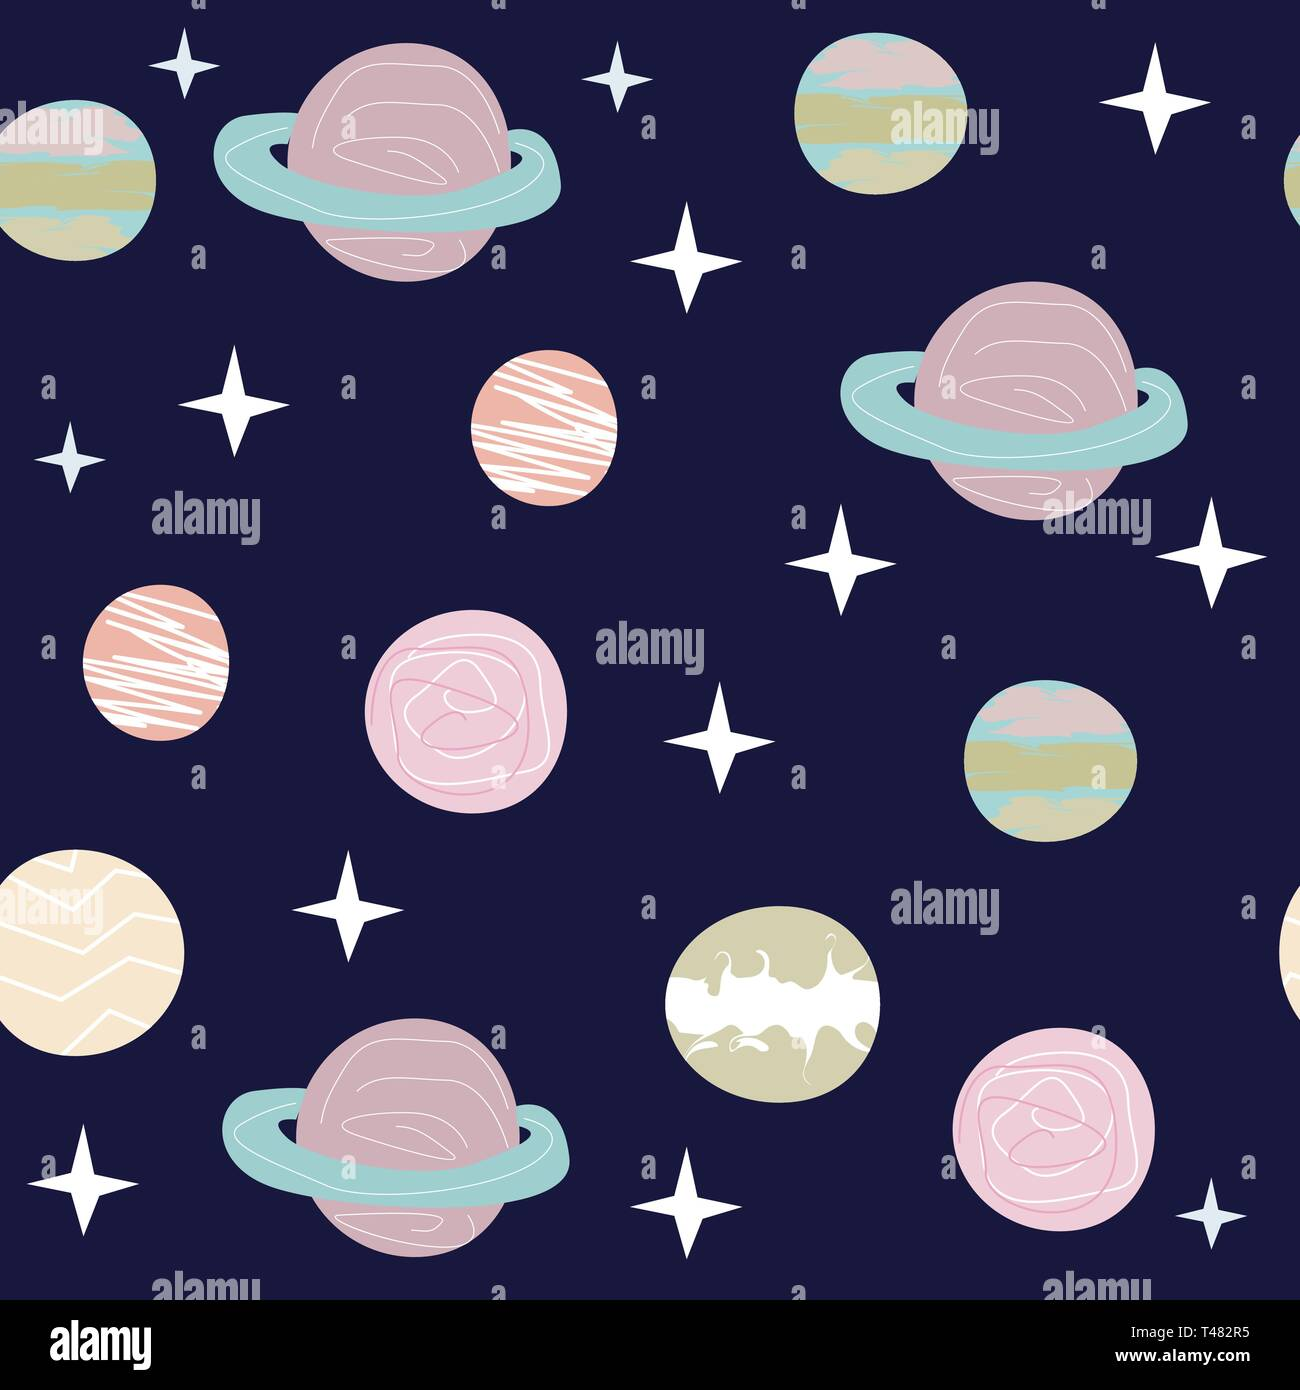 Space Cat Hero. Pattern with a flying cat in space, planets, rocket, stars. - Stock Vector